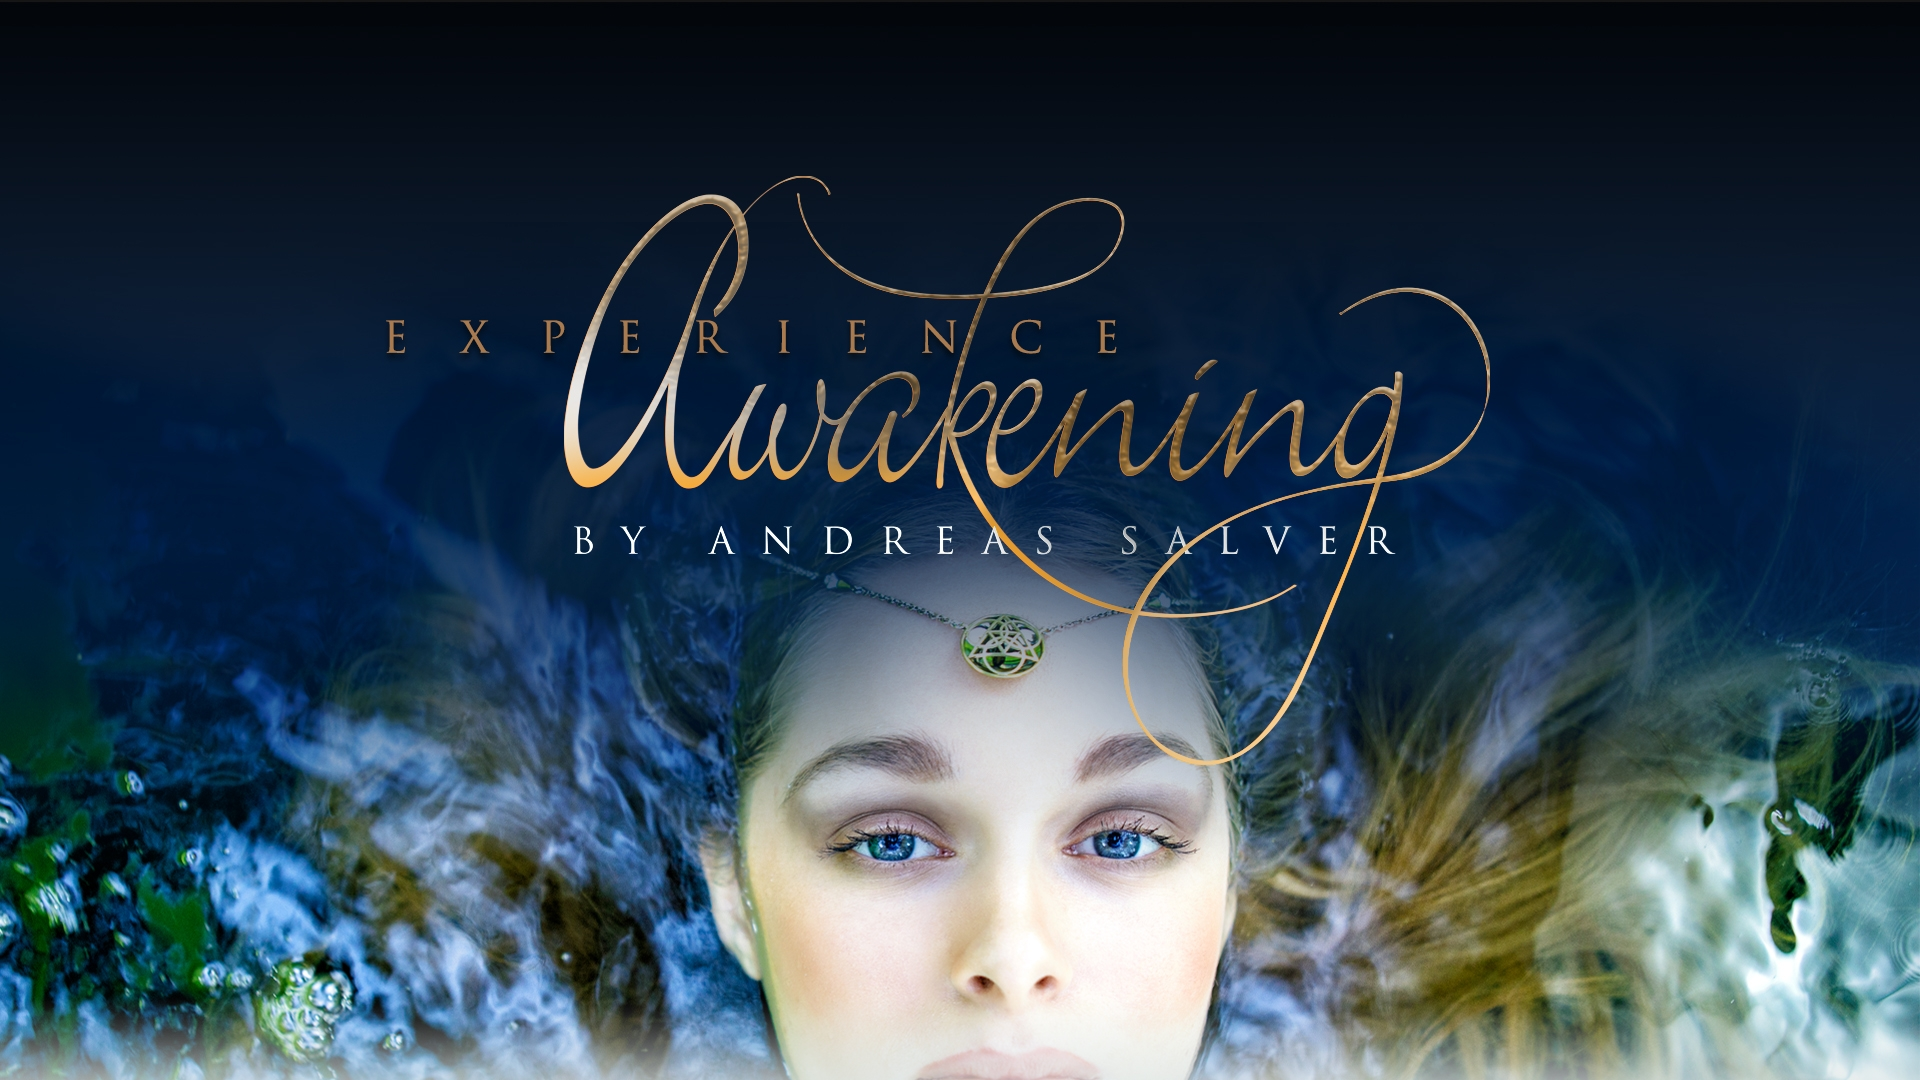 Awakening by Andreas Salver